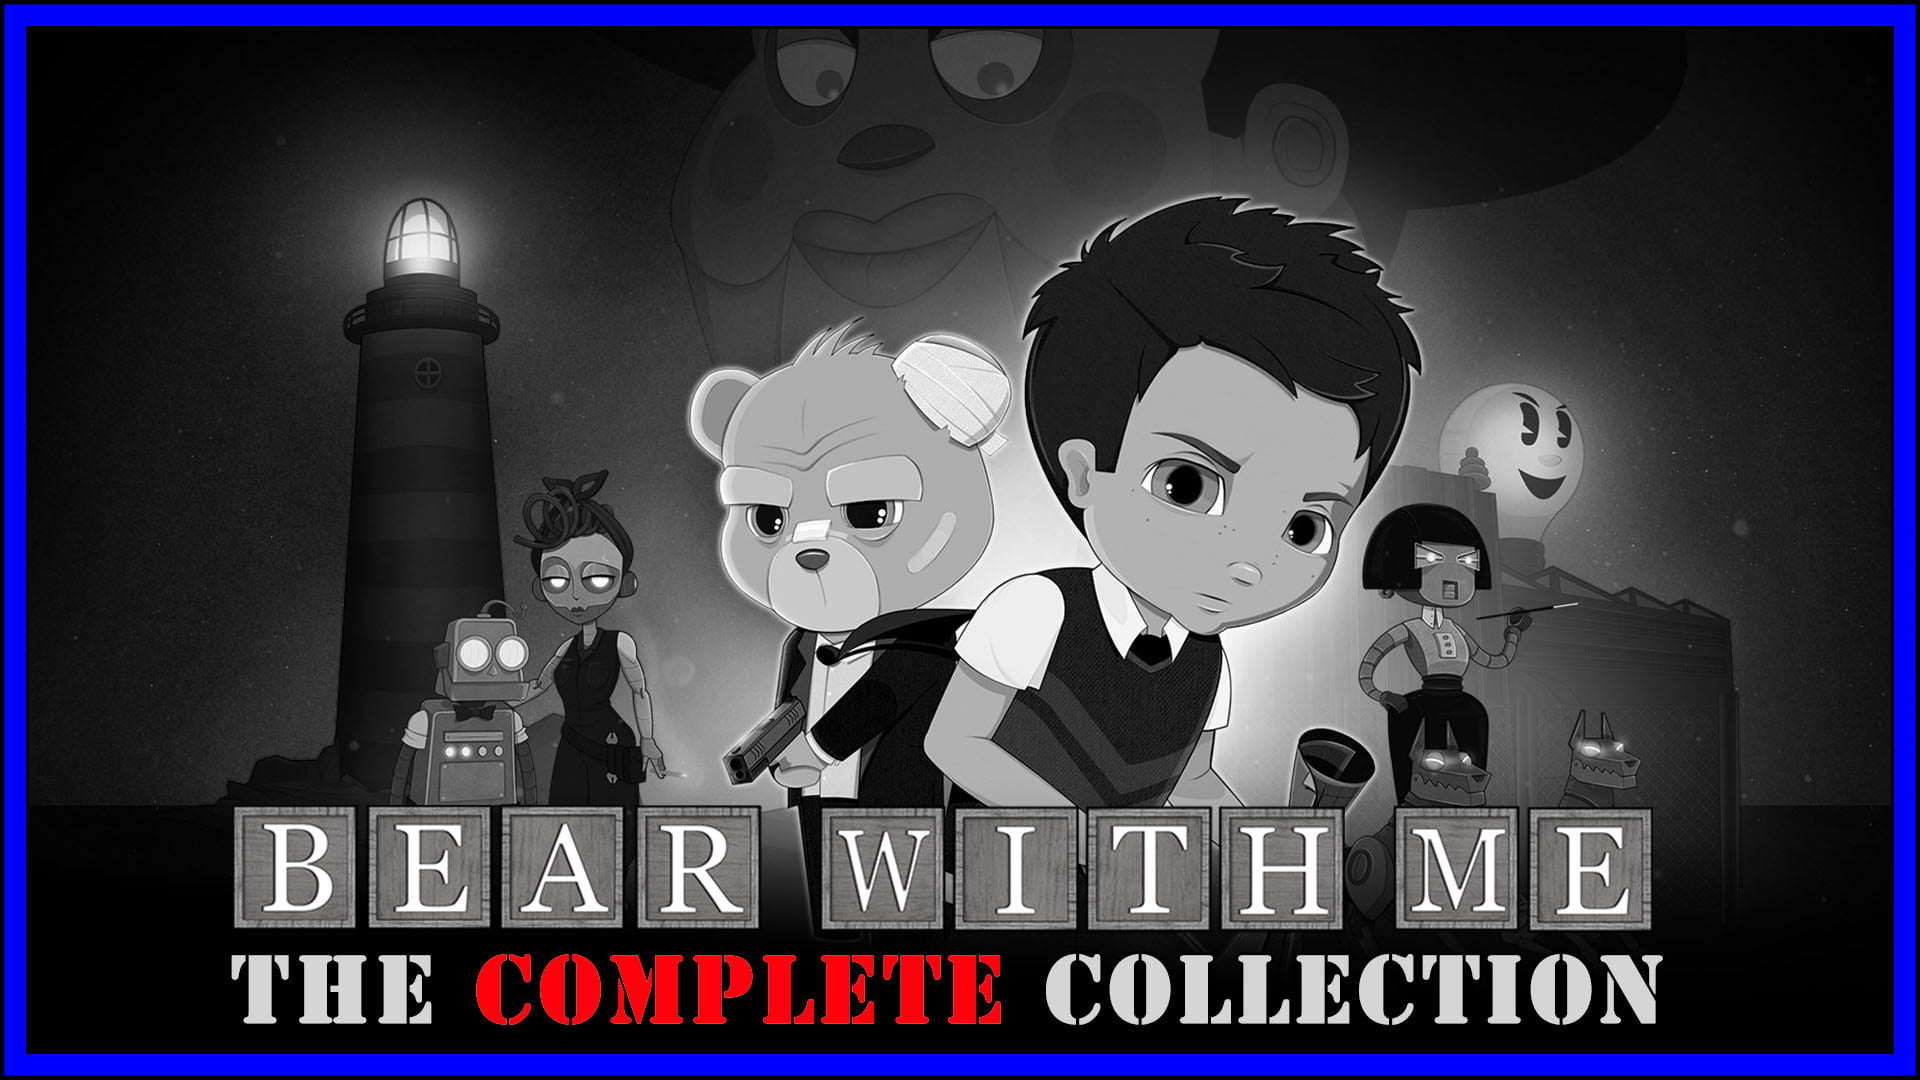 Bear With Me: The Complete Collection (PS4) Review